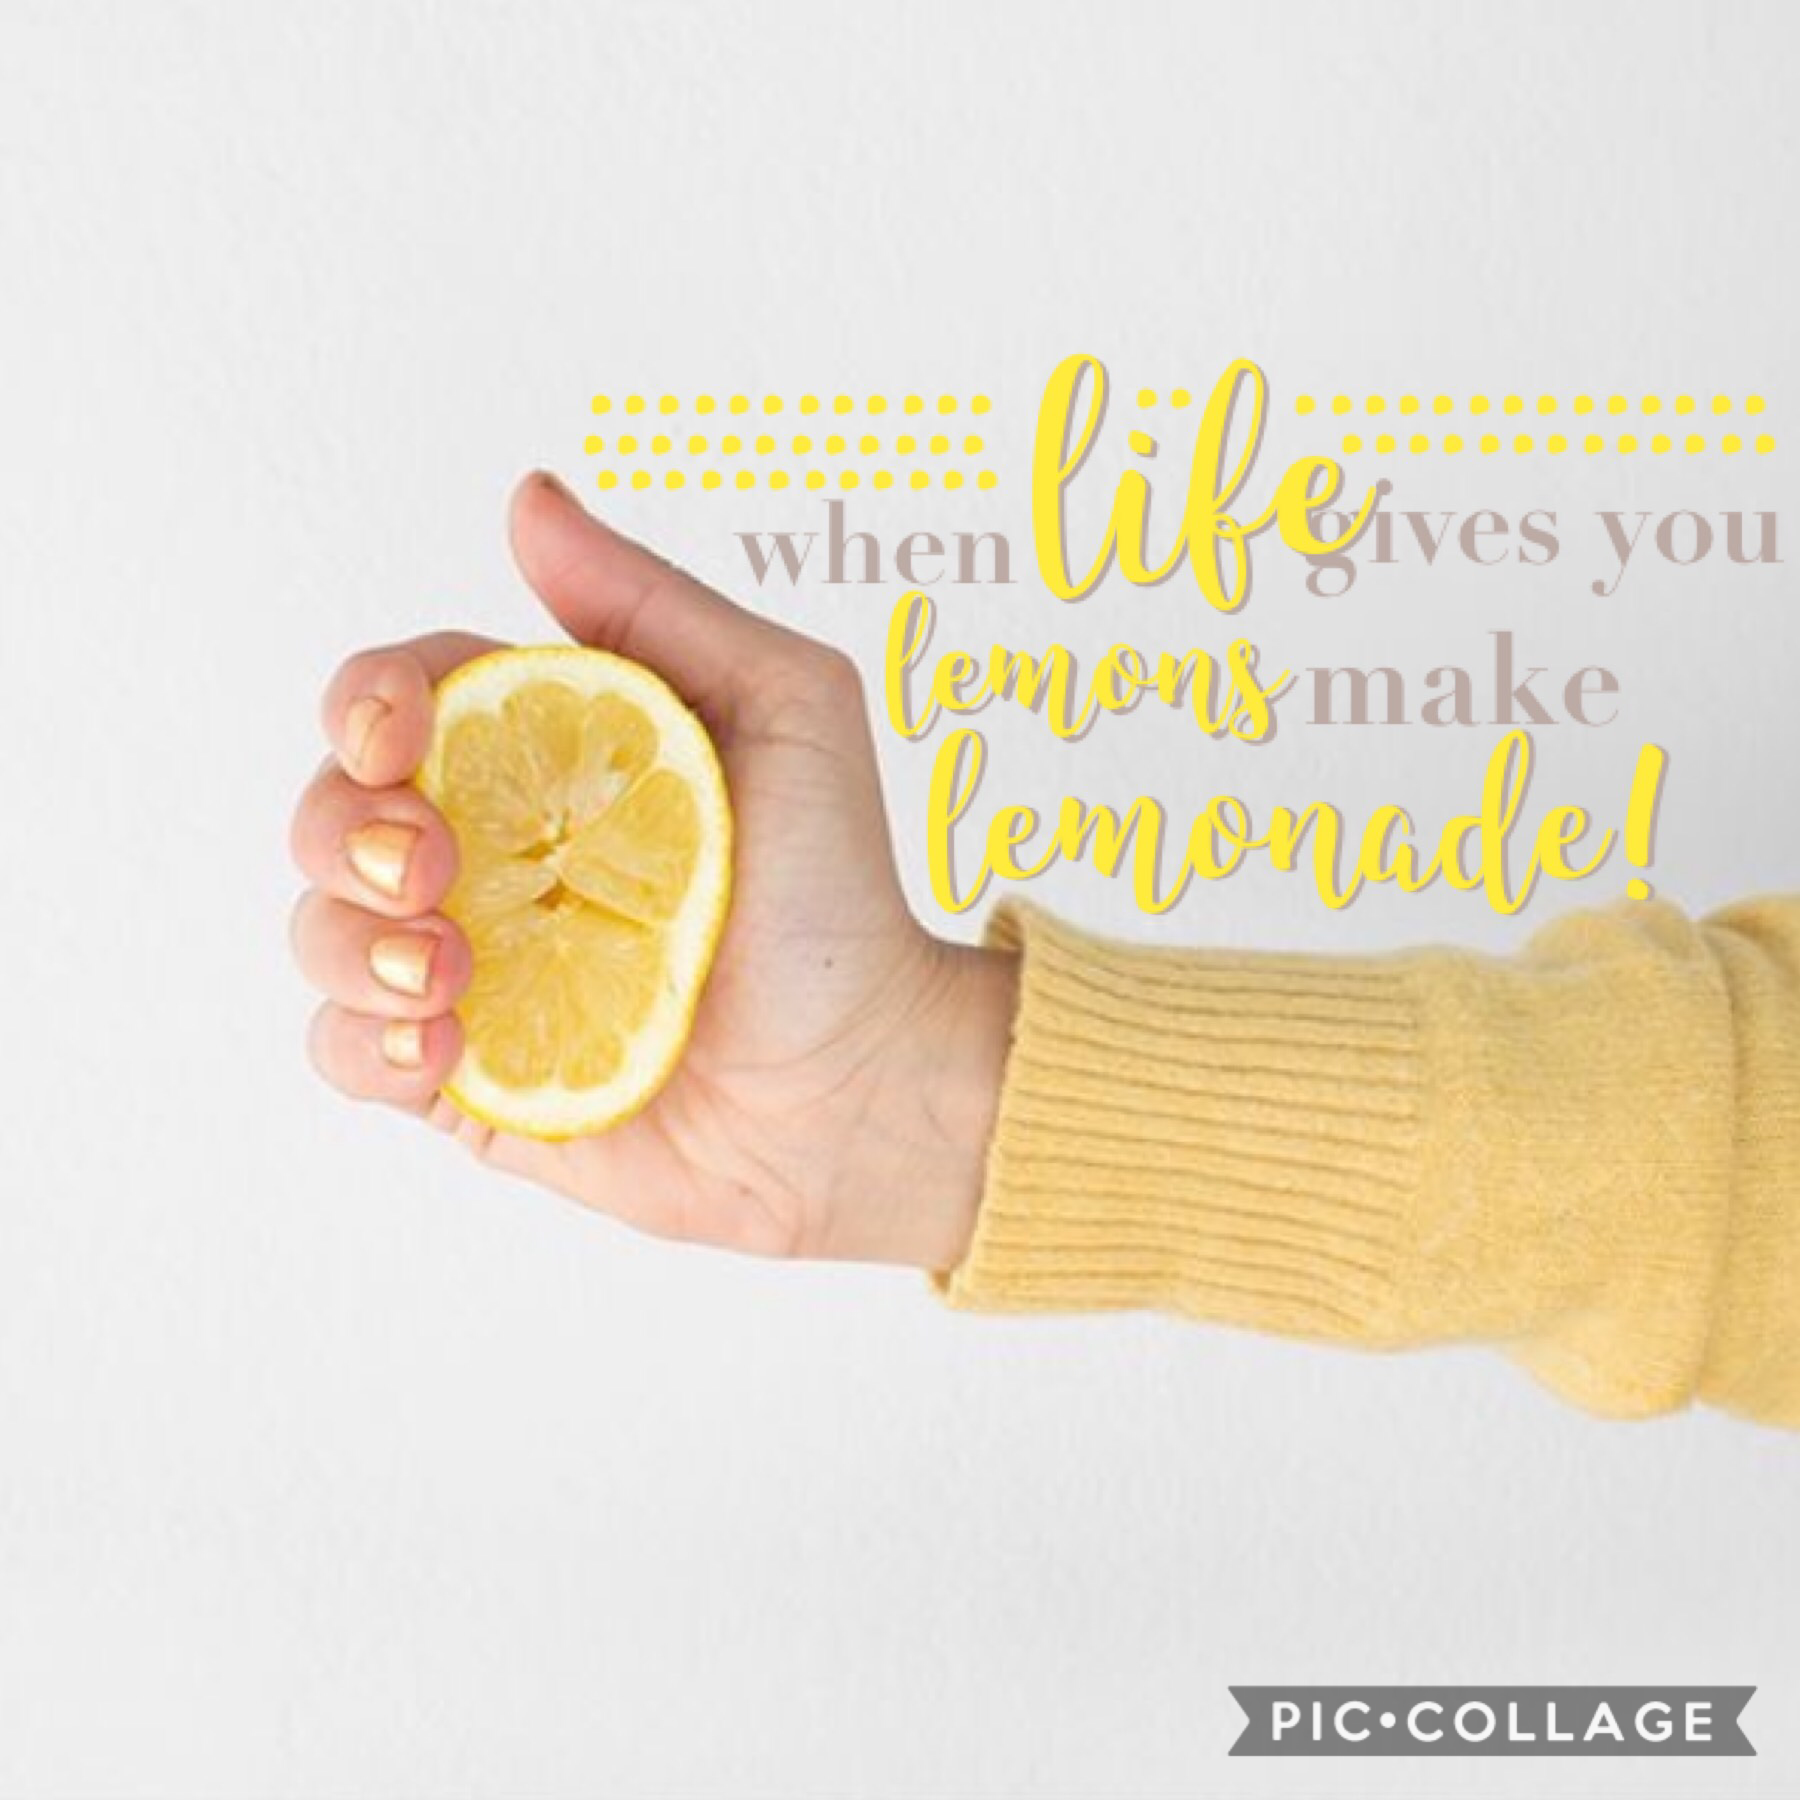 new theme. when life gives you lemons, make lemonade!🍋